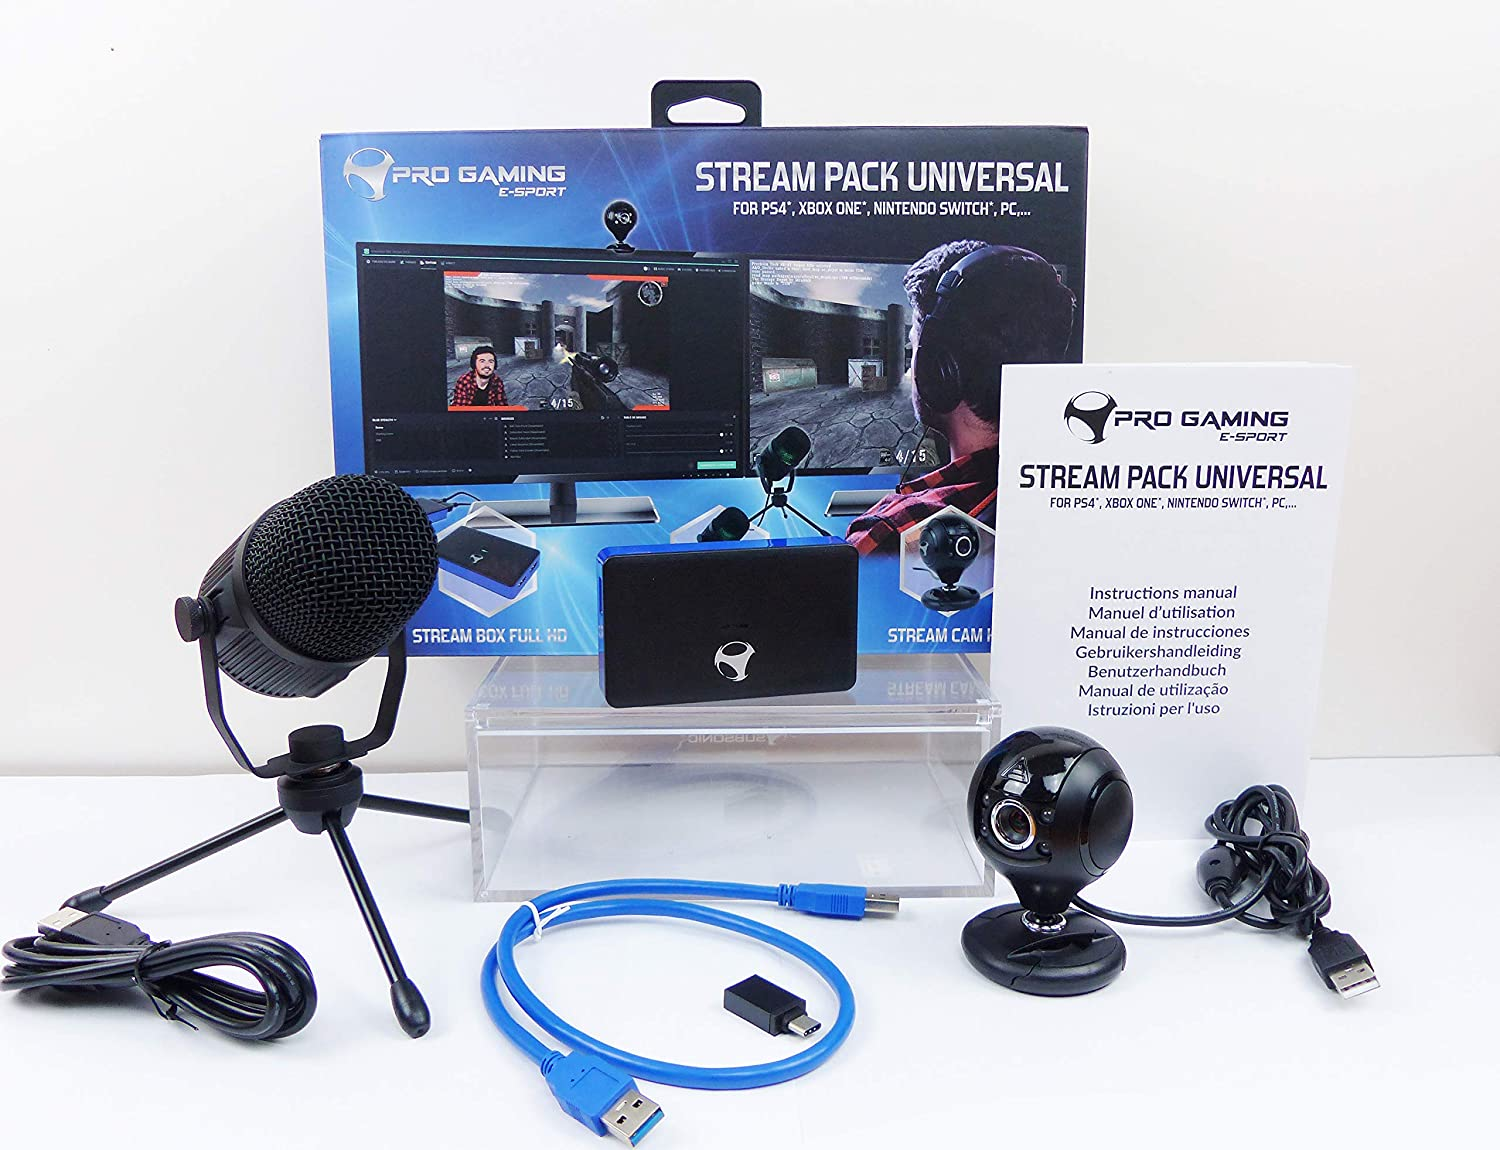 Stream Pack accesorios de captura de vídeo Full HD, micrófono y cámara HD para PS4/PS4 Slim/PS4 Pro/Xbox One/PC/Nintendo Switch: Amazon.es: Videojuegos